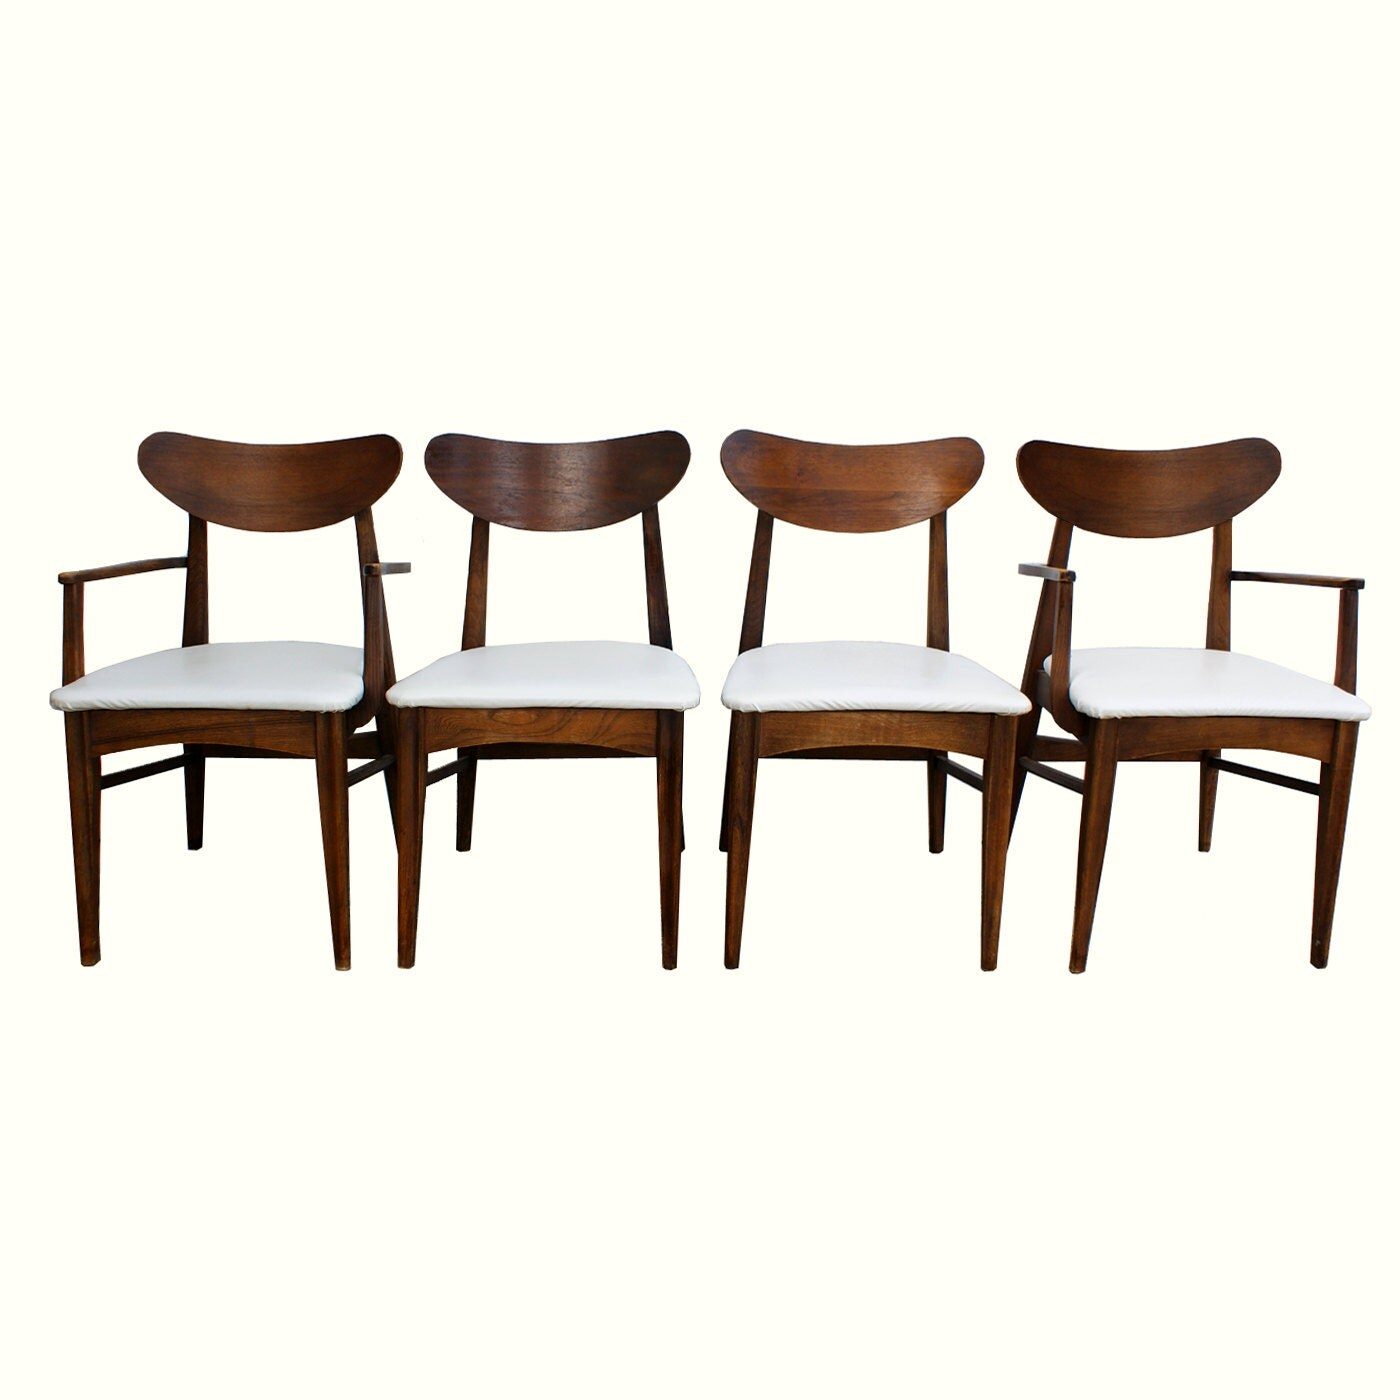 1950s 60s danish modern style dining chairs set of 4 for Designer chairs from the 60s